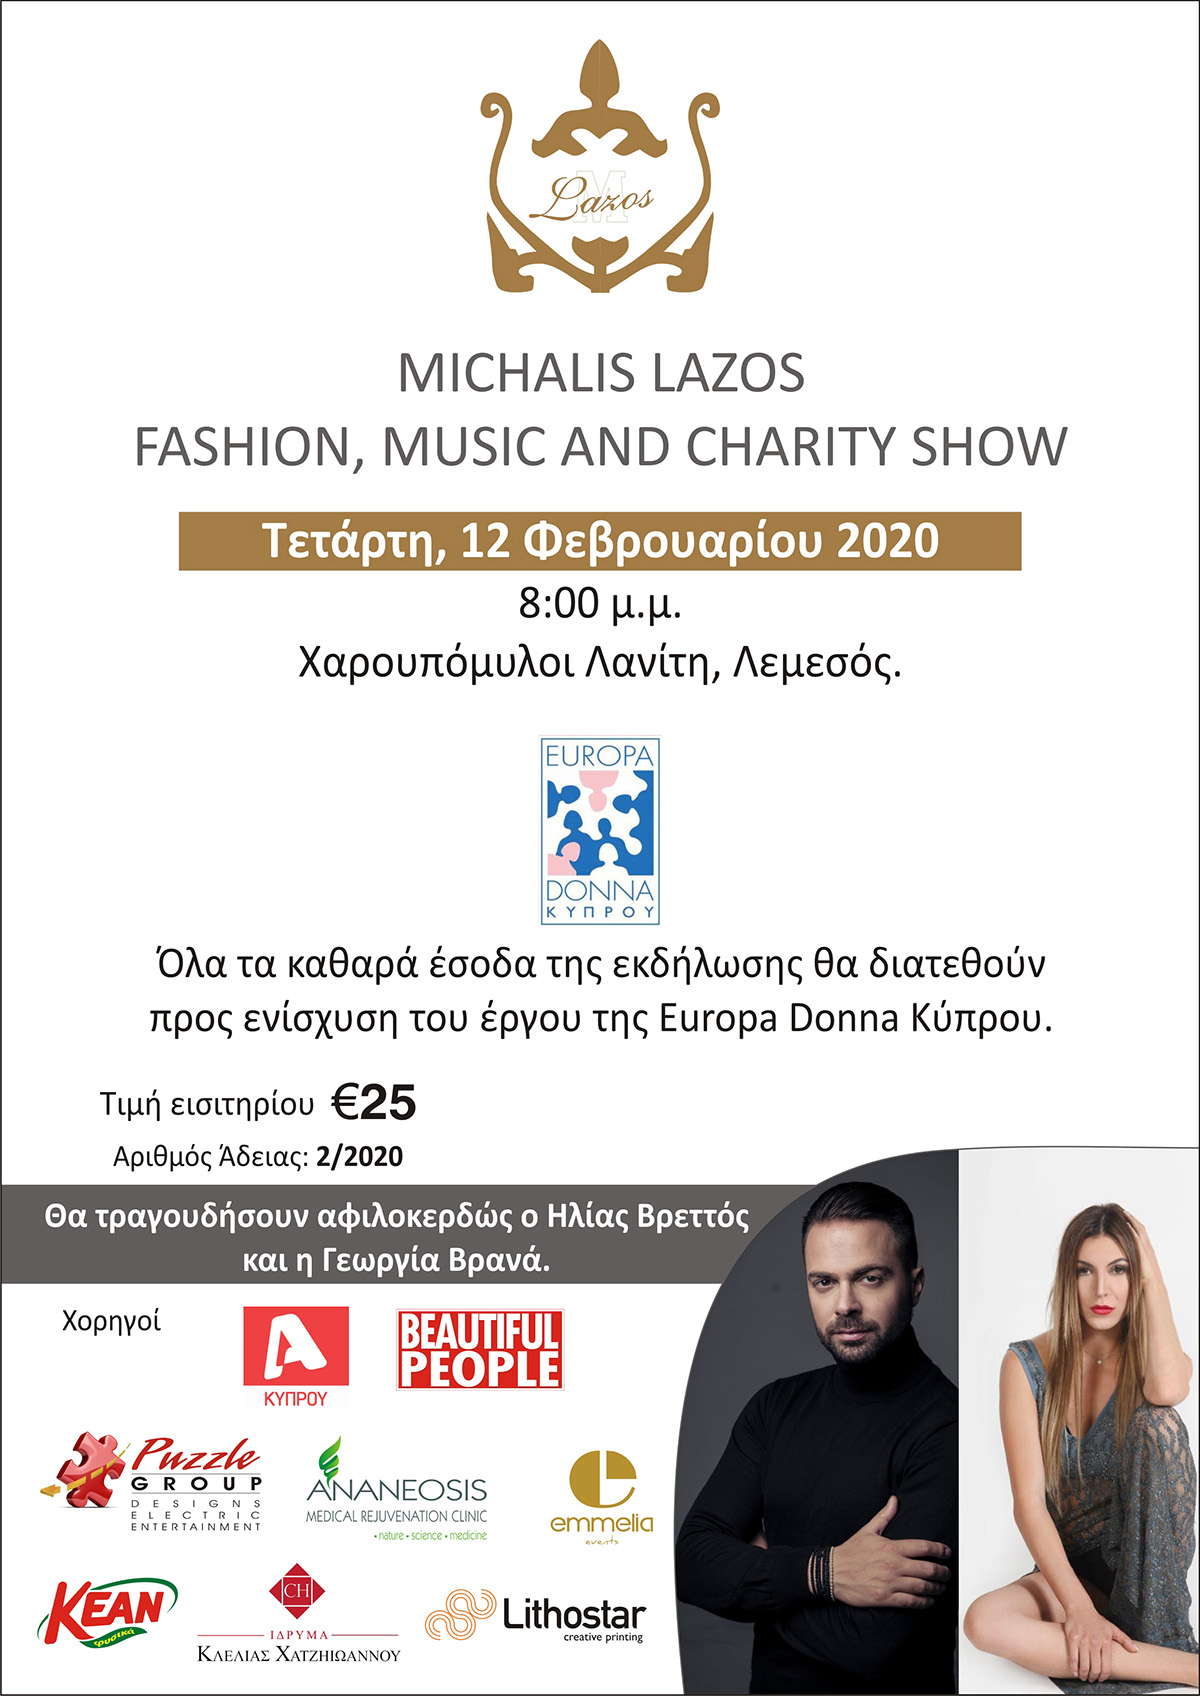 «MICHALIS LAZOS FASHION, MUSIC AND CHARITY SHOW 2020»